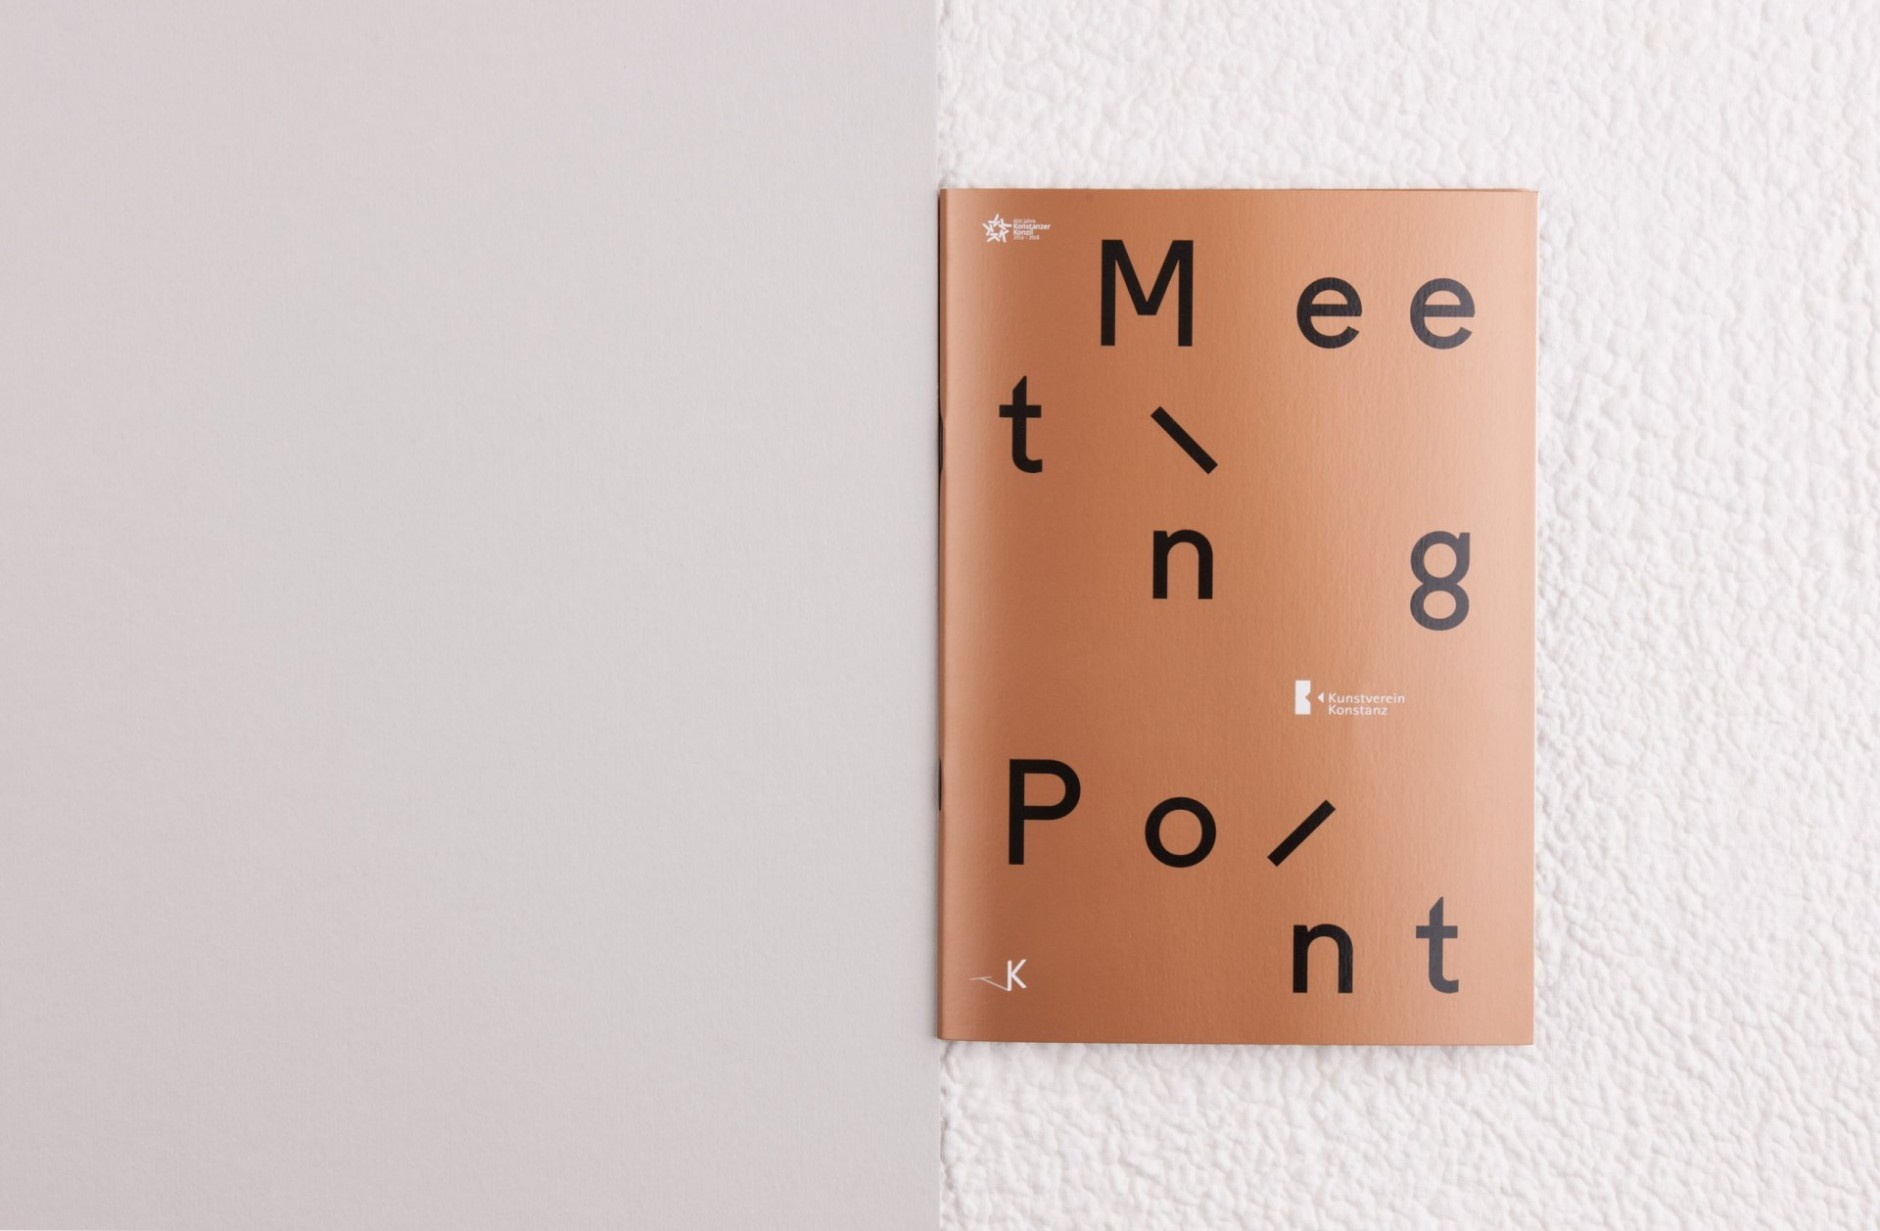 meeting-point1-002